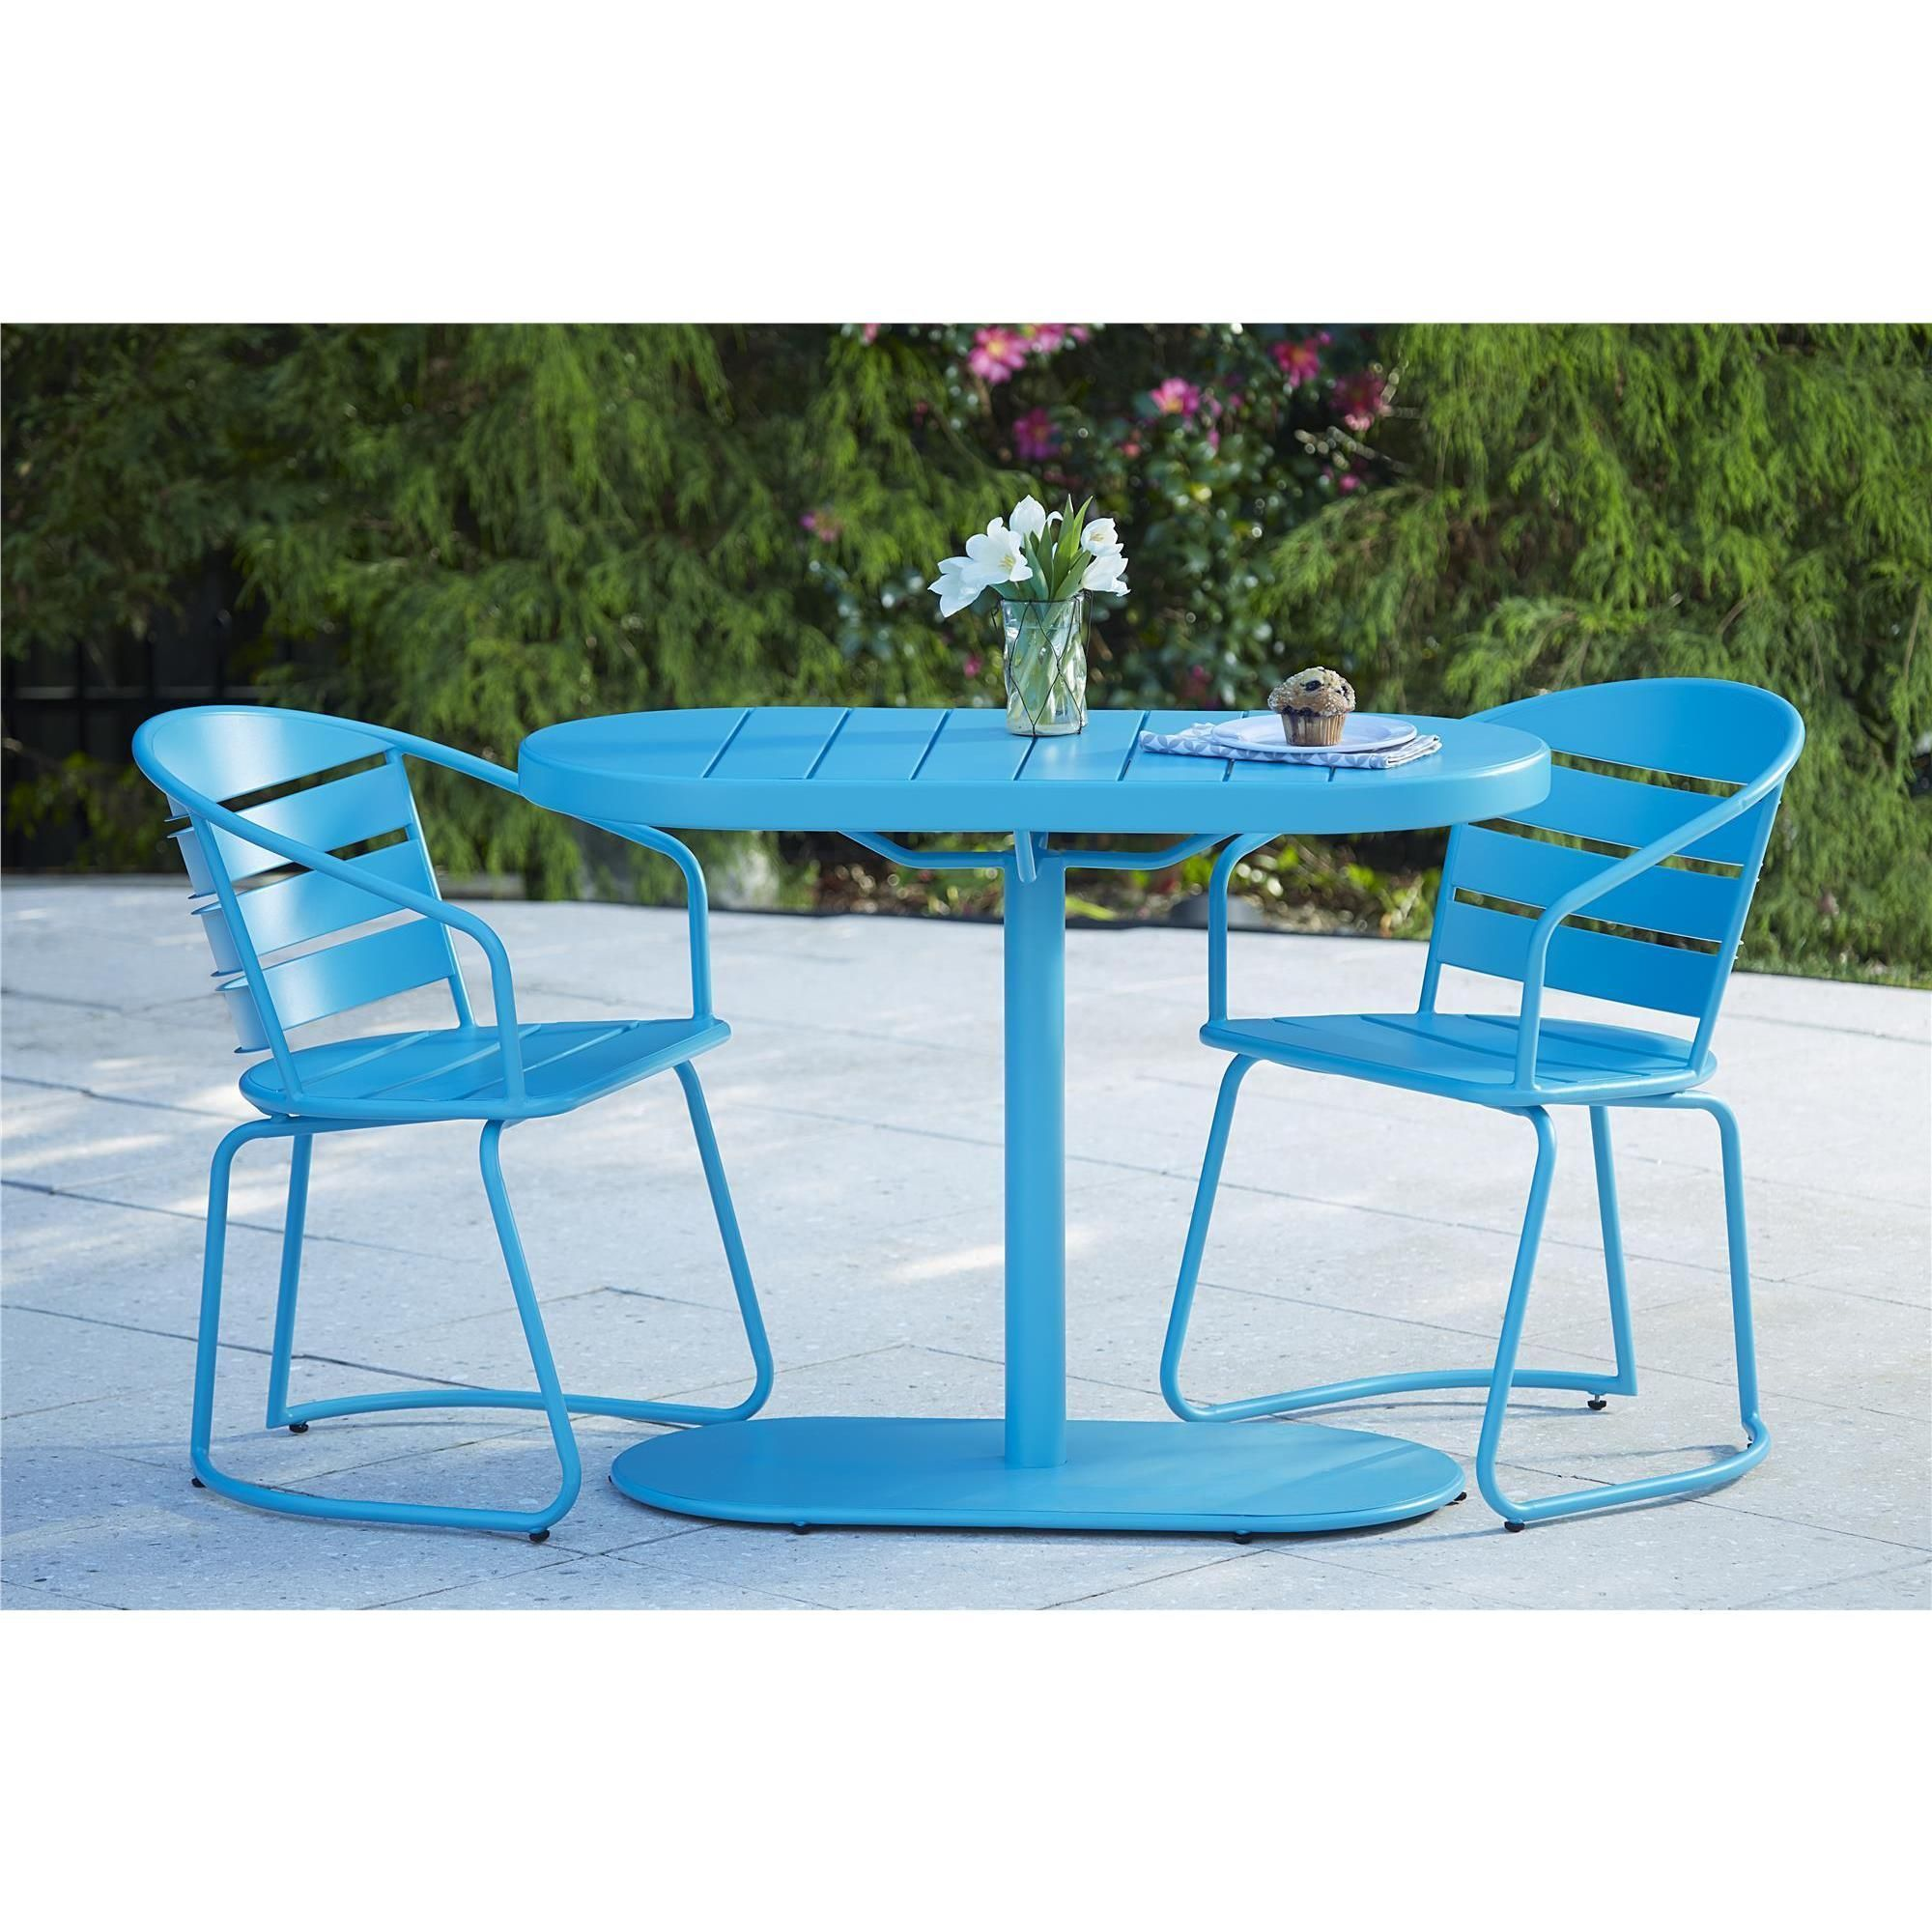 Avenue Greene Blue Outdoor Steel Nesting Bistro Patio Set 3 piece